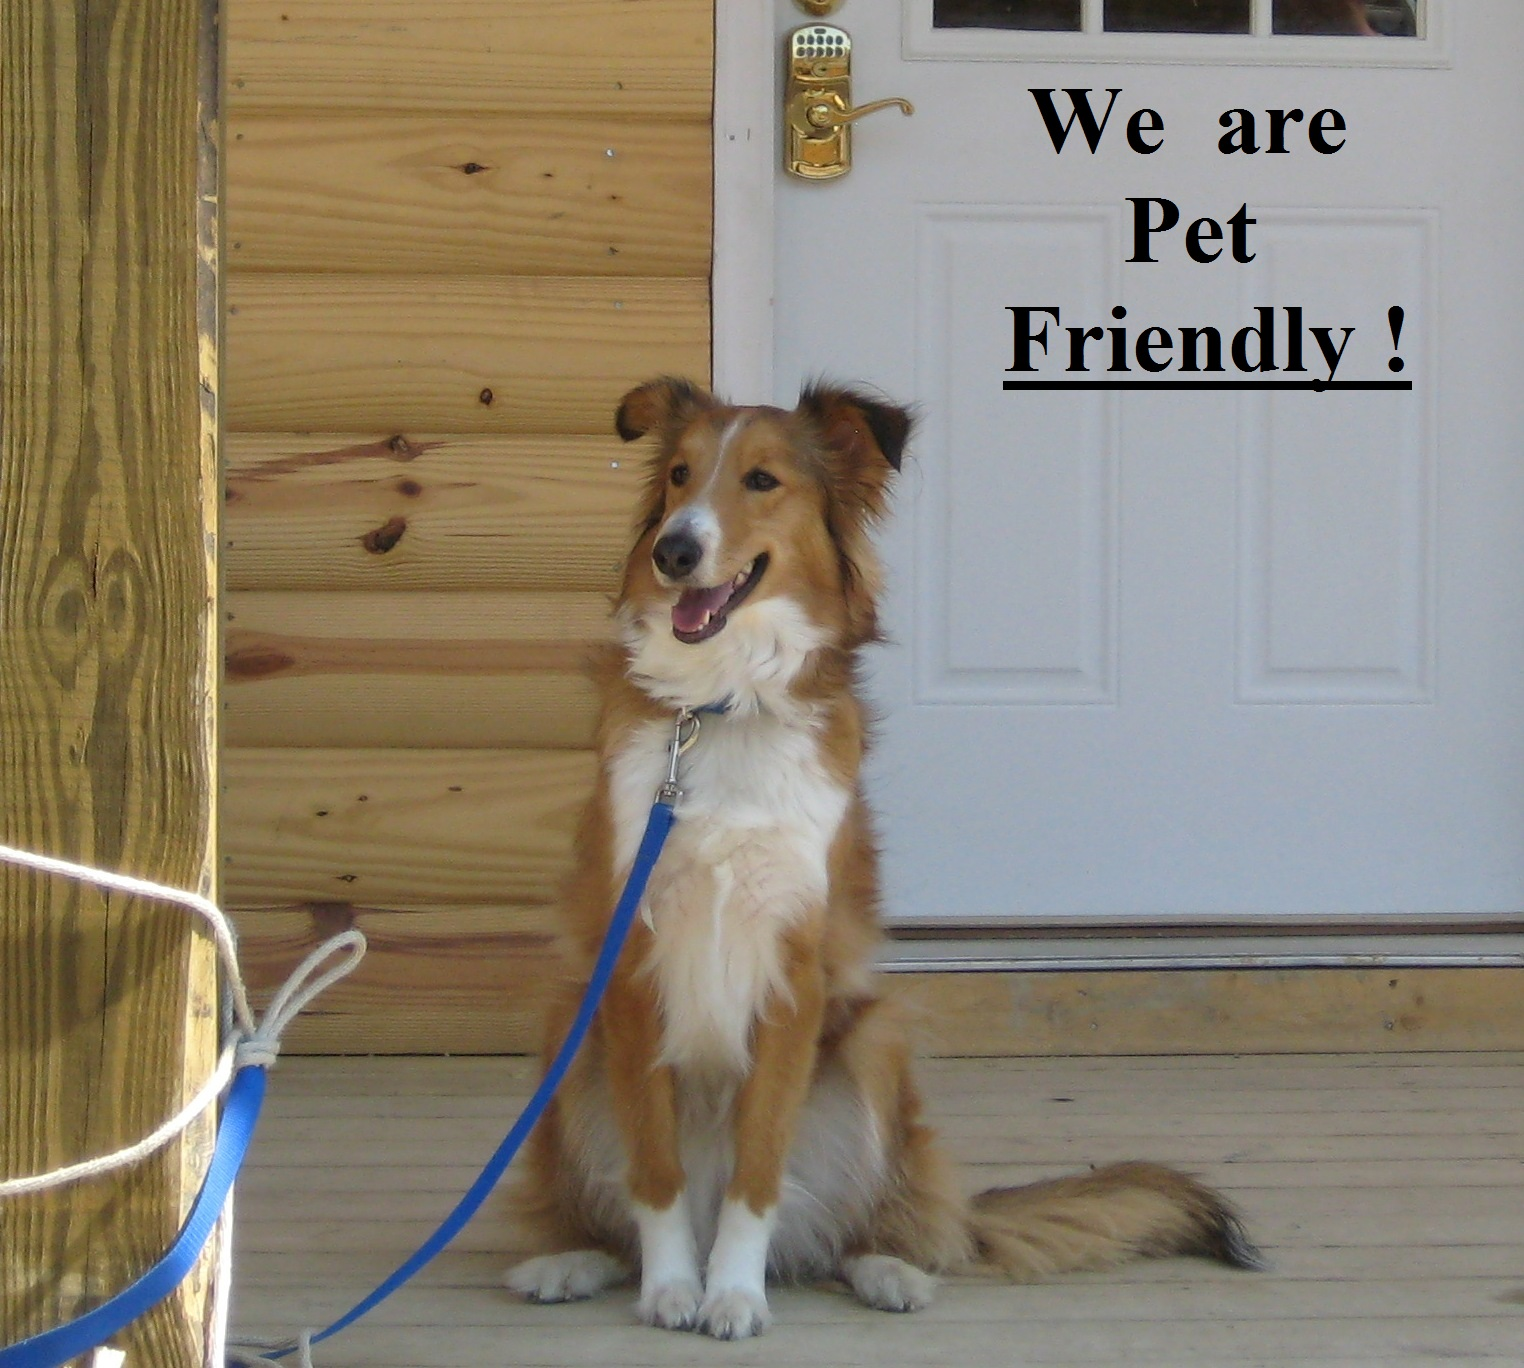 New River Cabins is pet friendly!